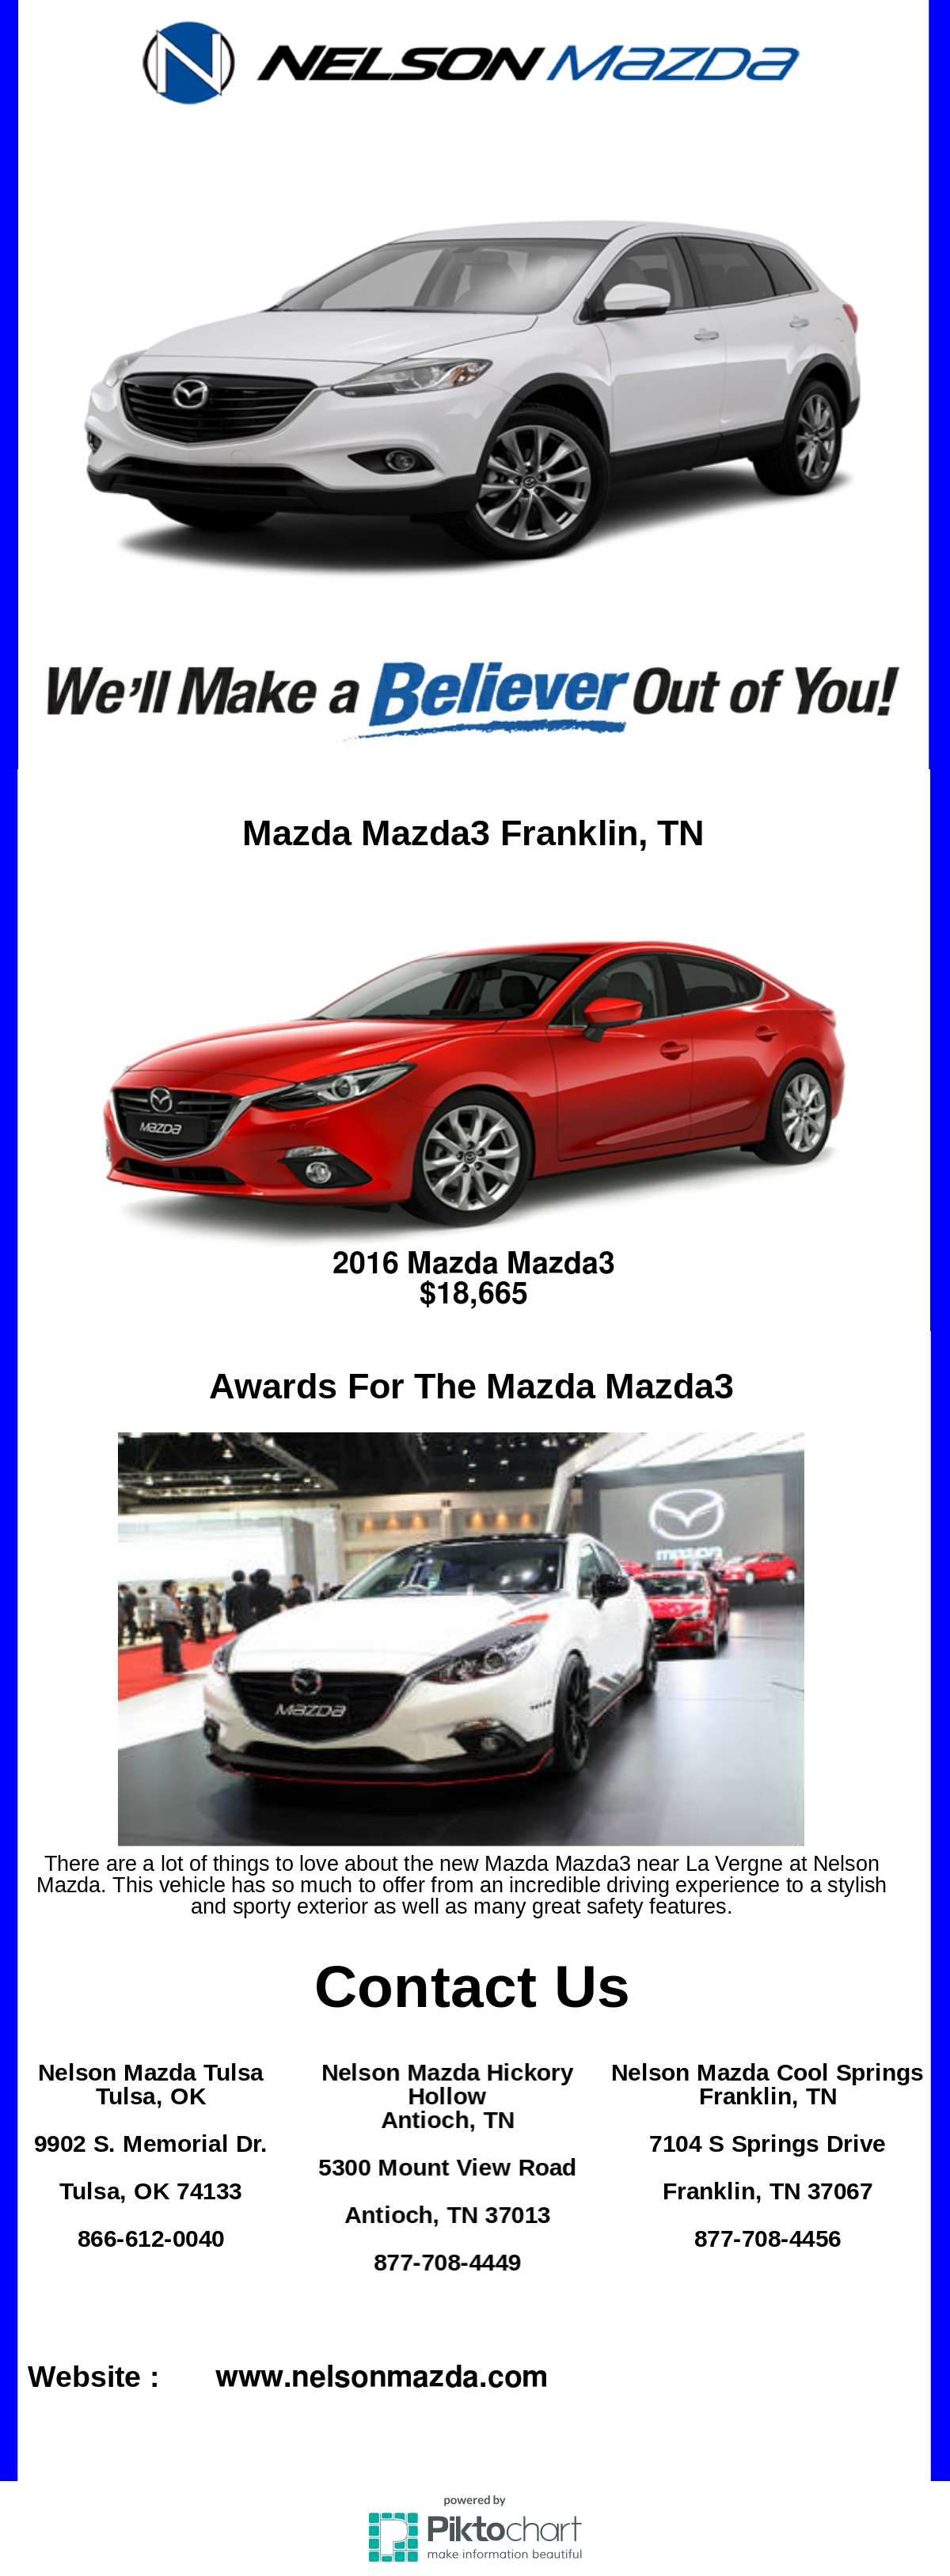 Nelson Mazda Official Site - Mazda New, Used & Certified Car Dealers